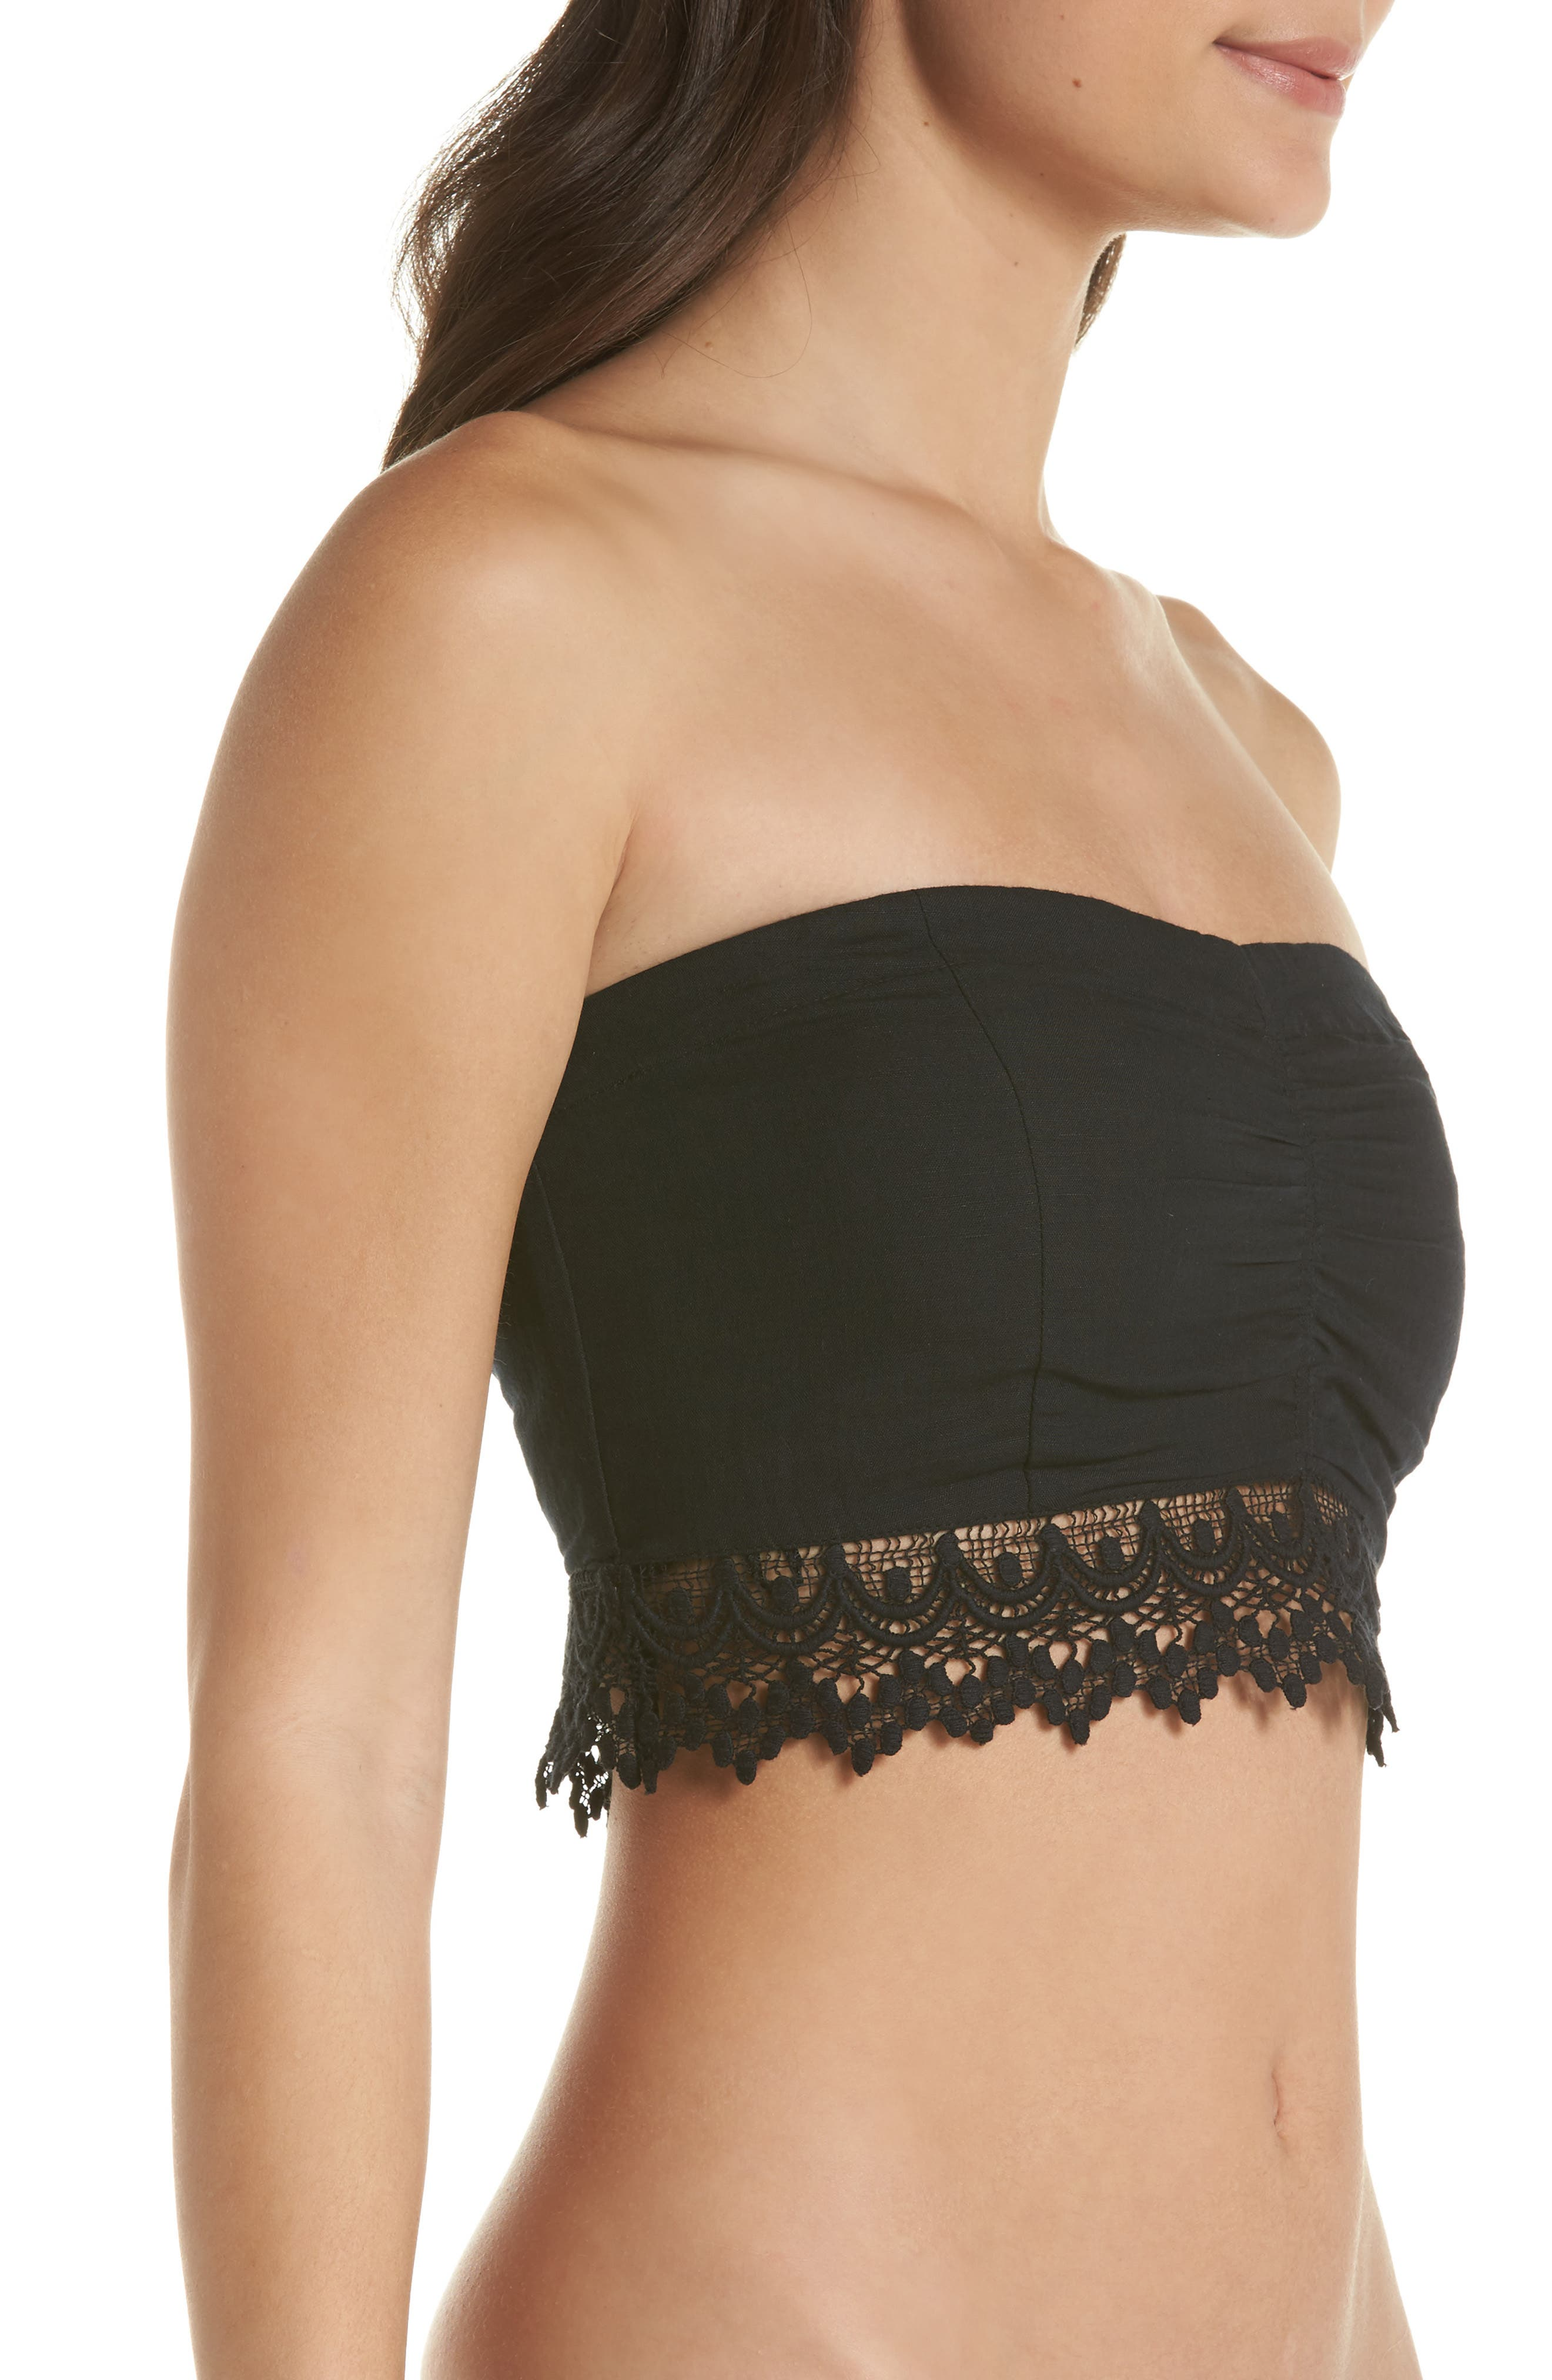 Intimately FP Dream Lover Bandeau Bralette,                             Alternate thumbnail 3, color,                             Black